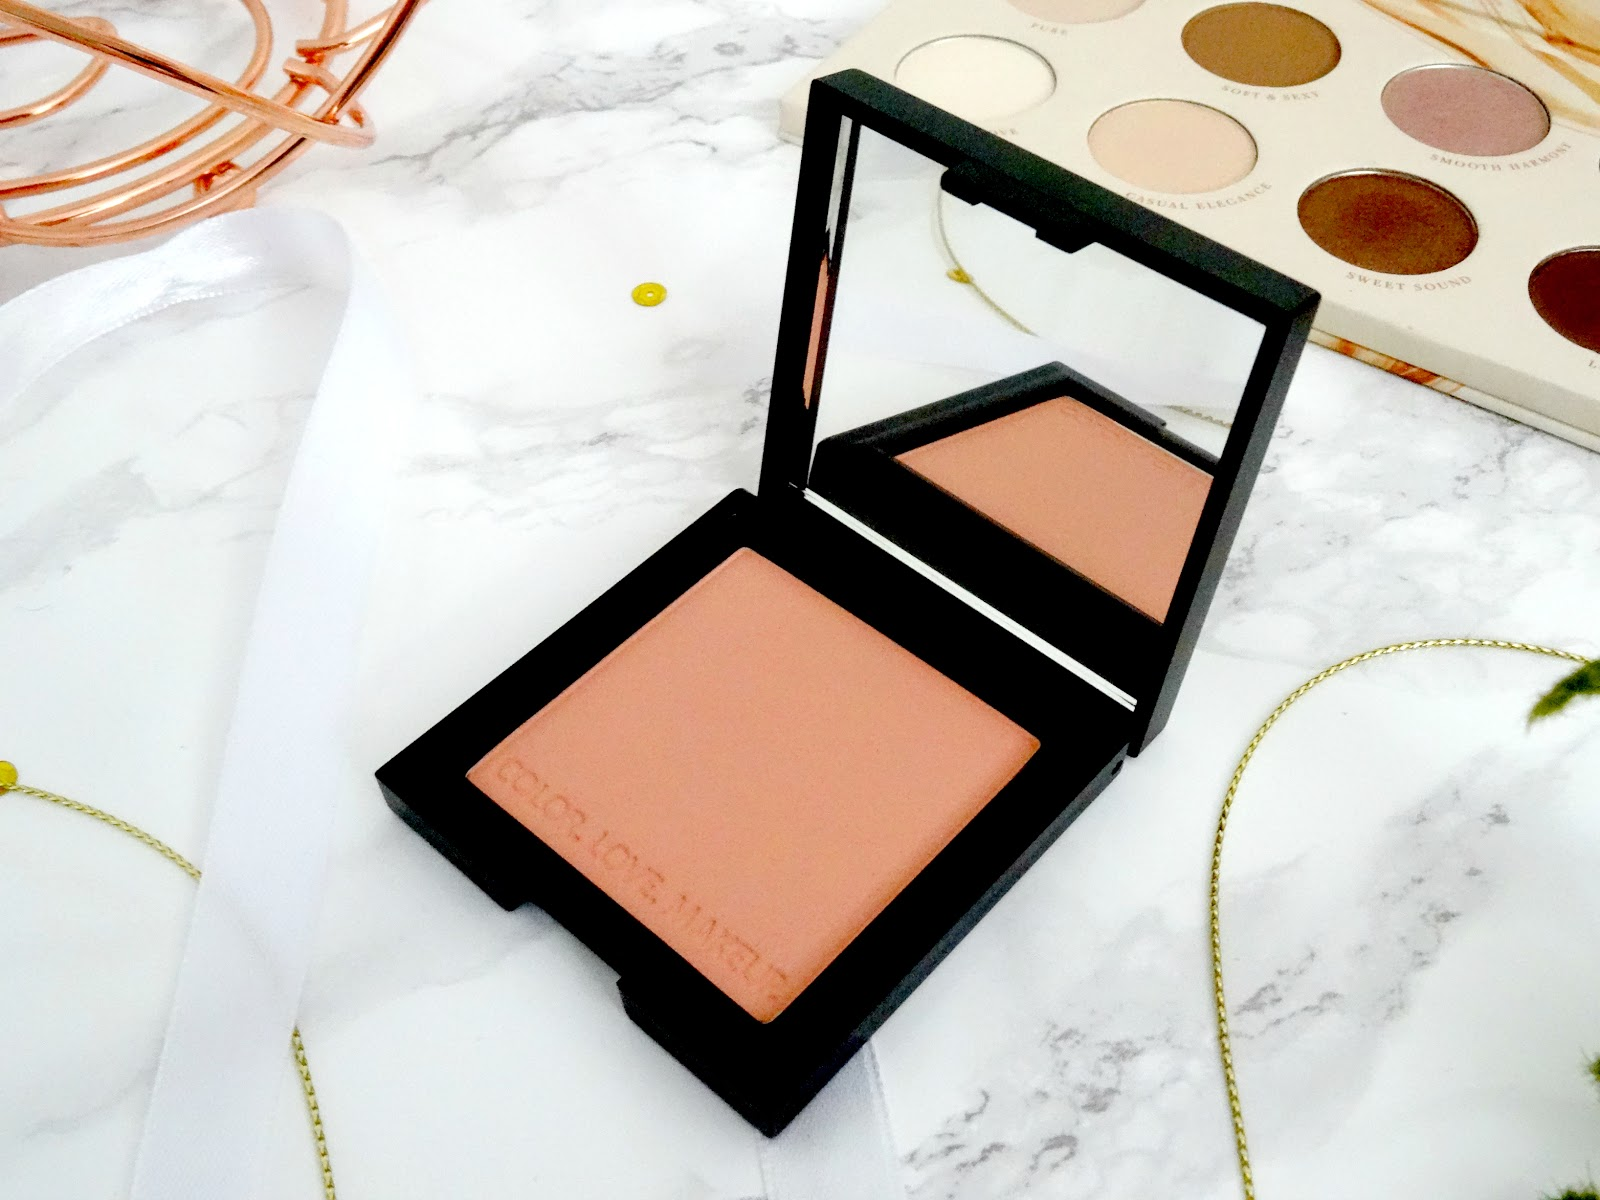 Zoeva Luxe Colour Blush in Shy Girl